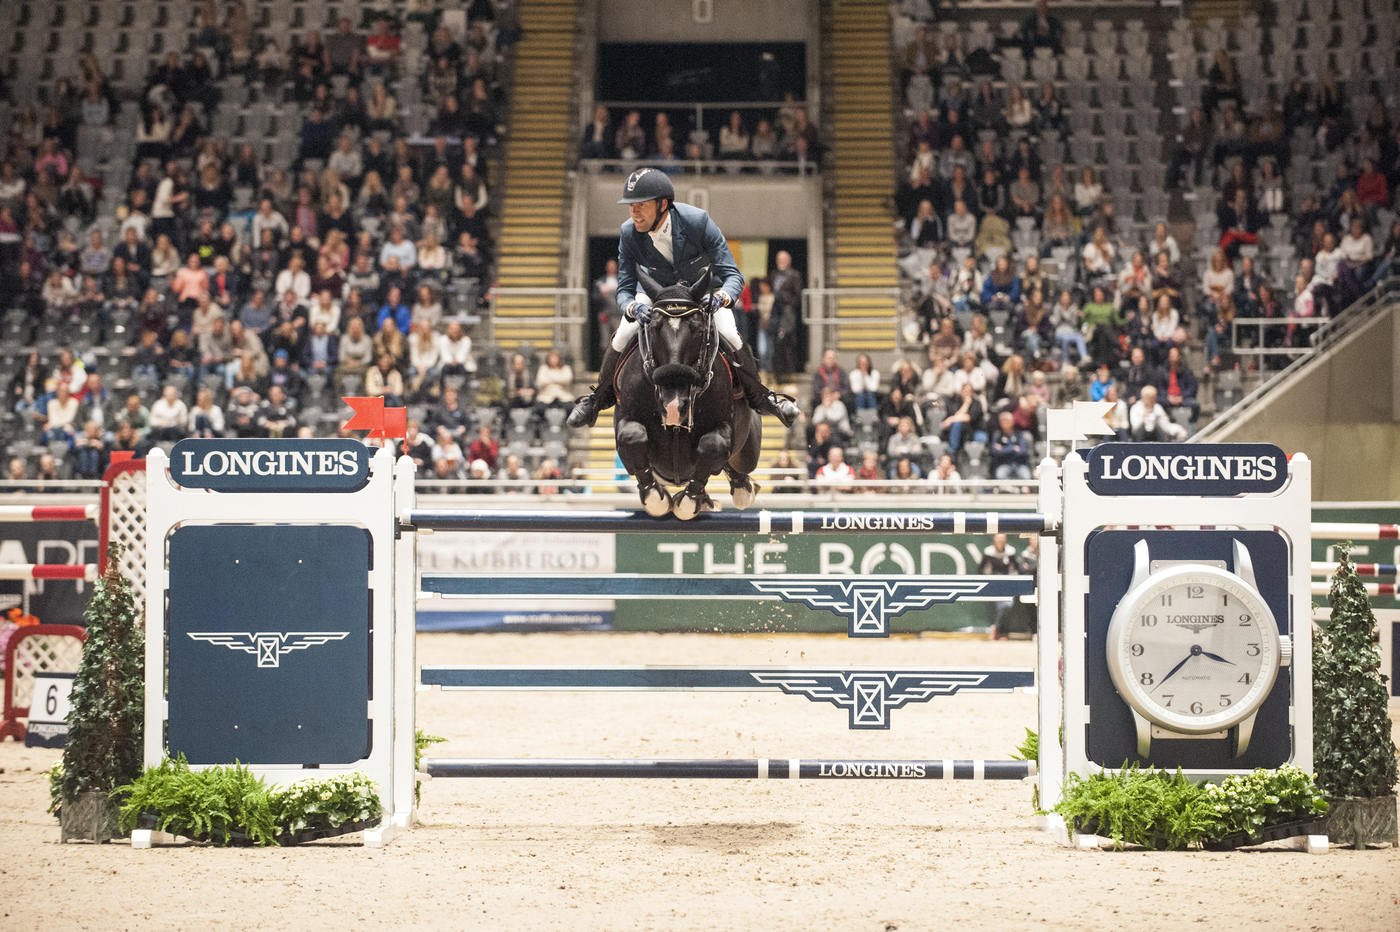 Longines Show Jumping Event: French riders rule the first leg of the Longines FEI World Cup™ Jumping in Oslo 4